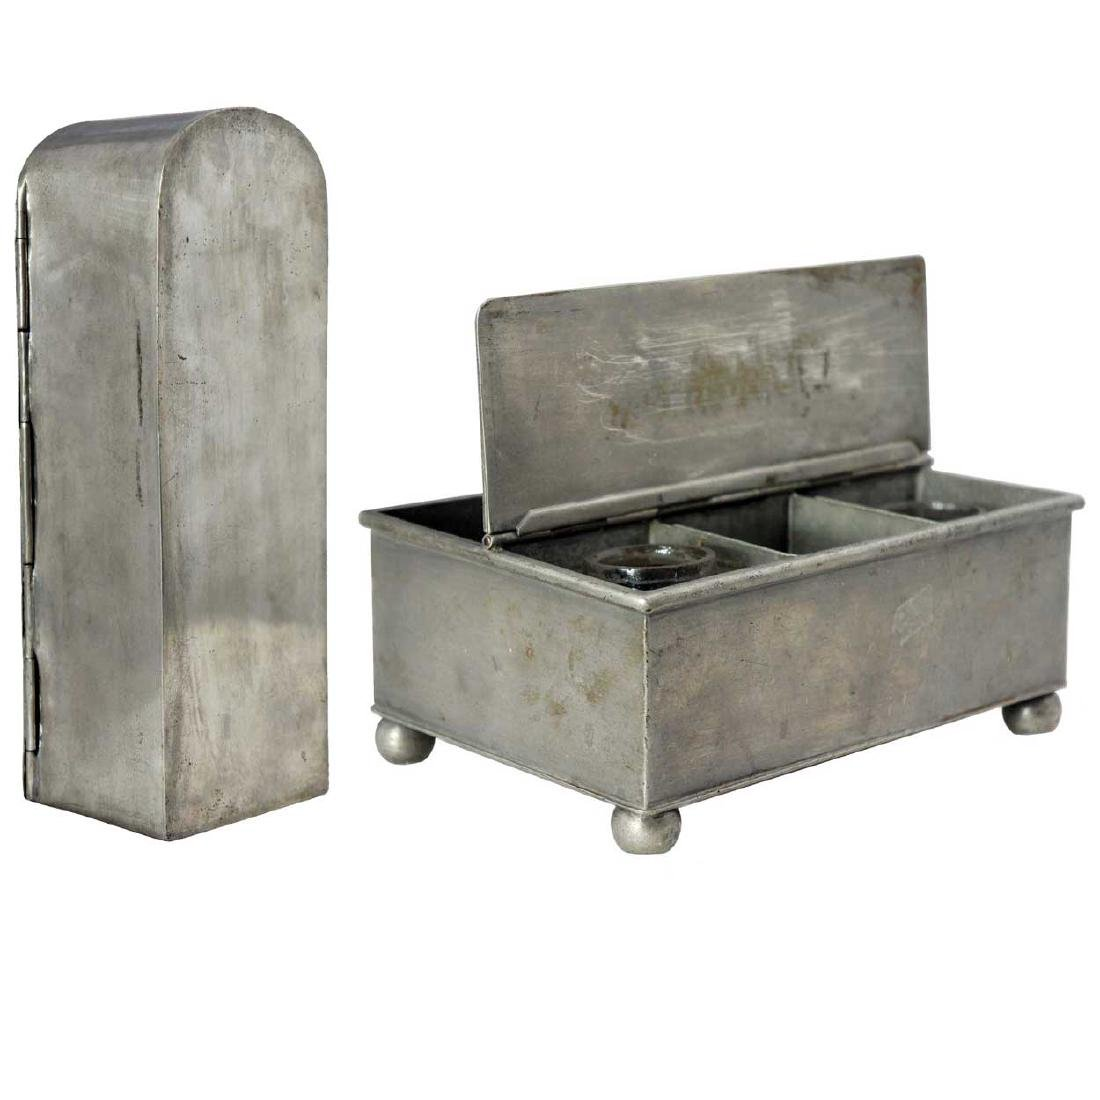 Two Antique English Pewter Desk Boxes